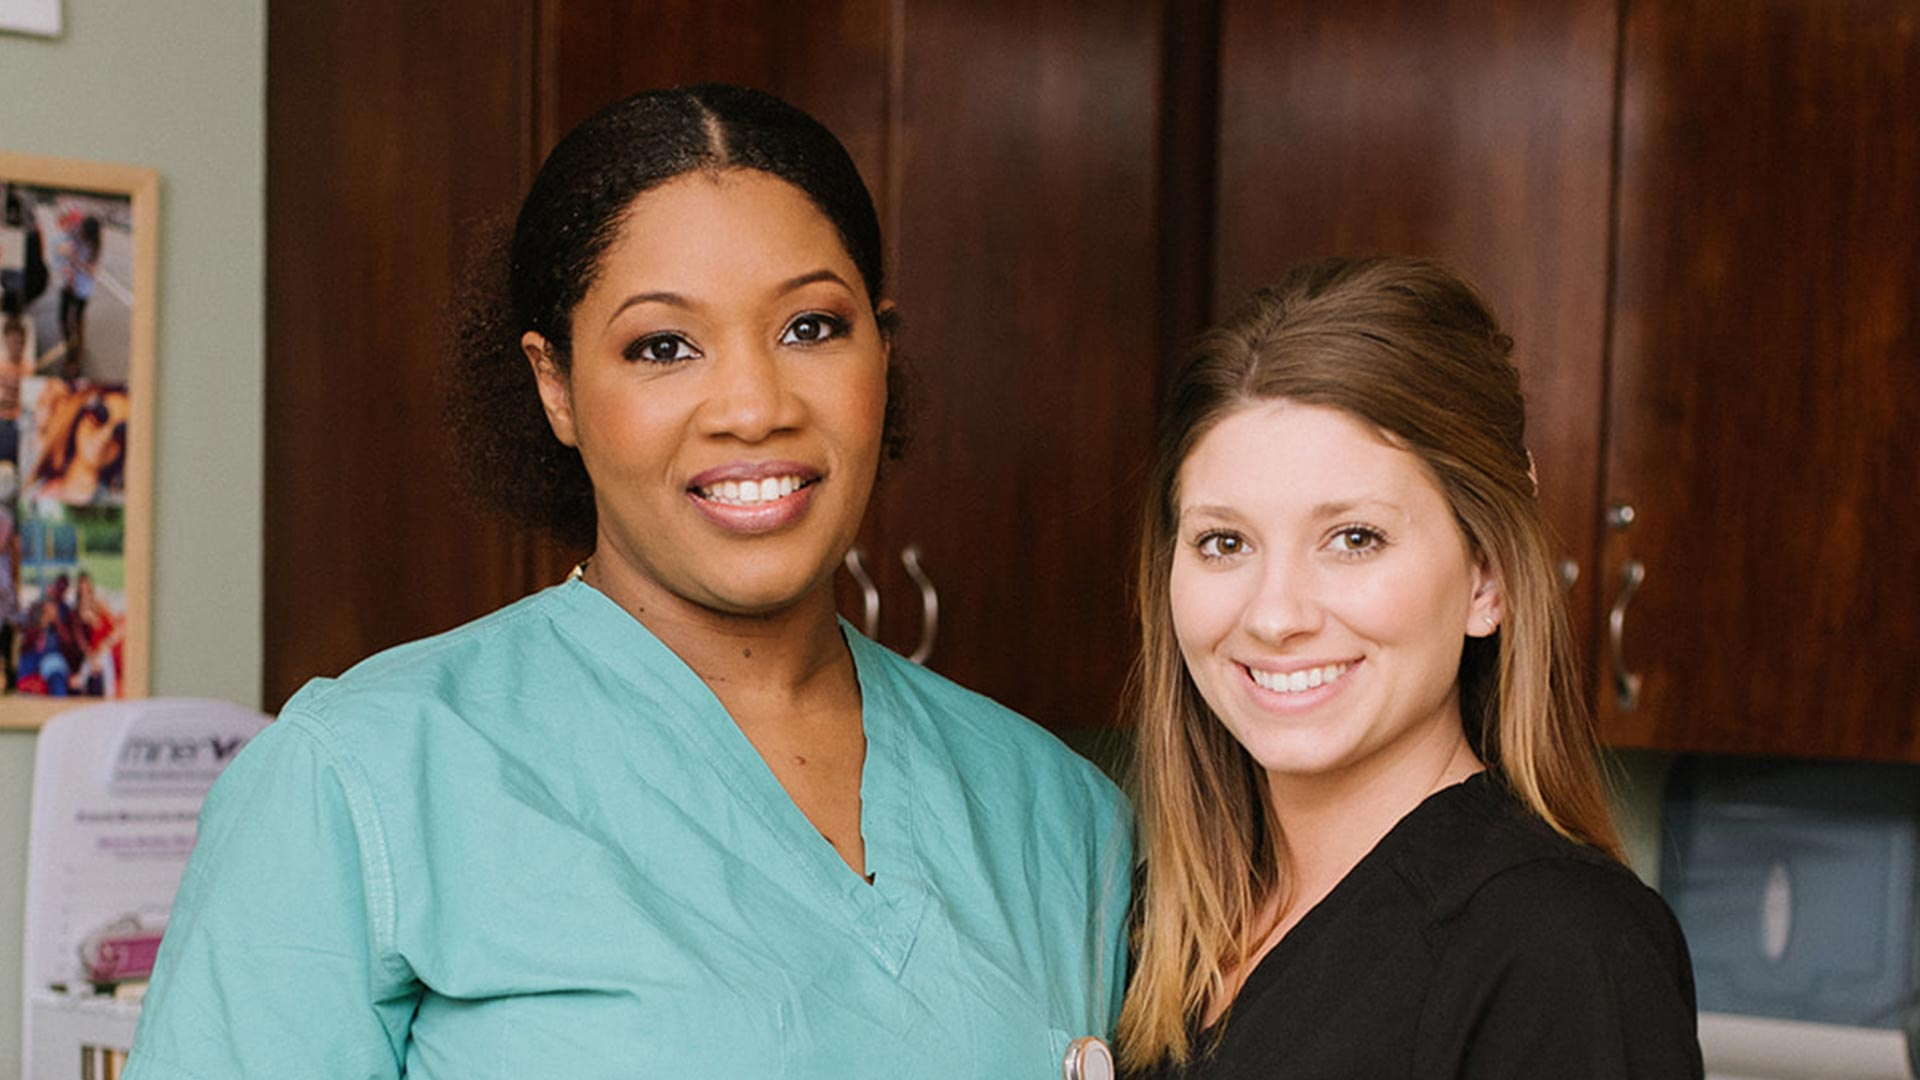 Dr. Hodge and a North Oaks OBGYN nurse.